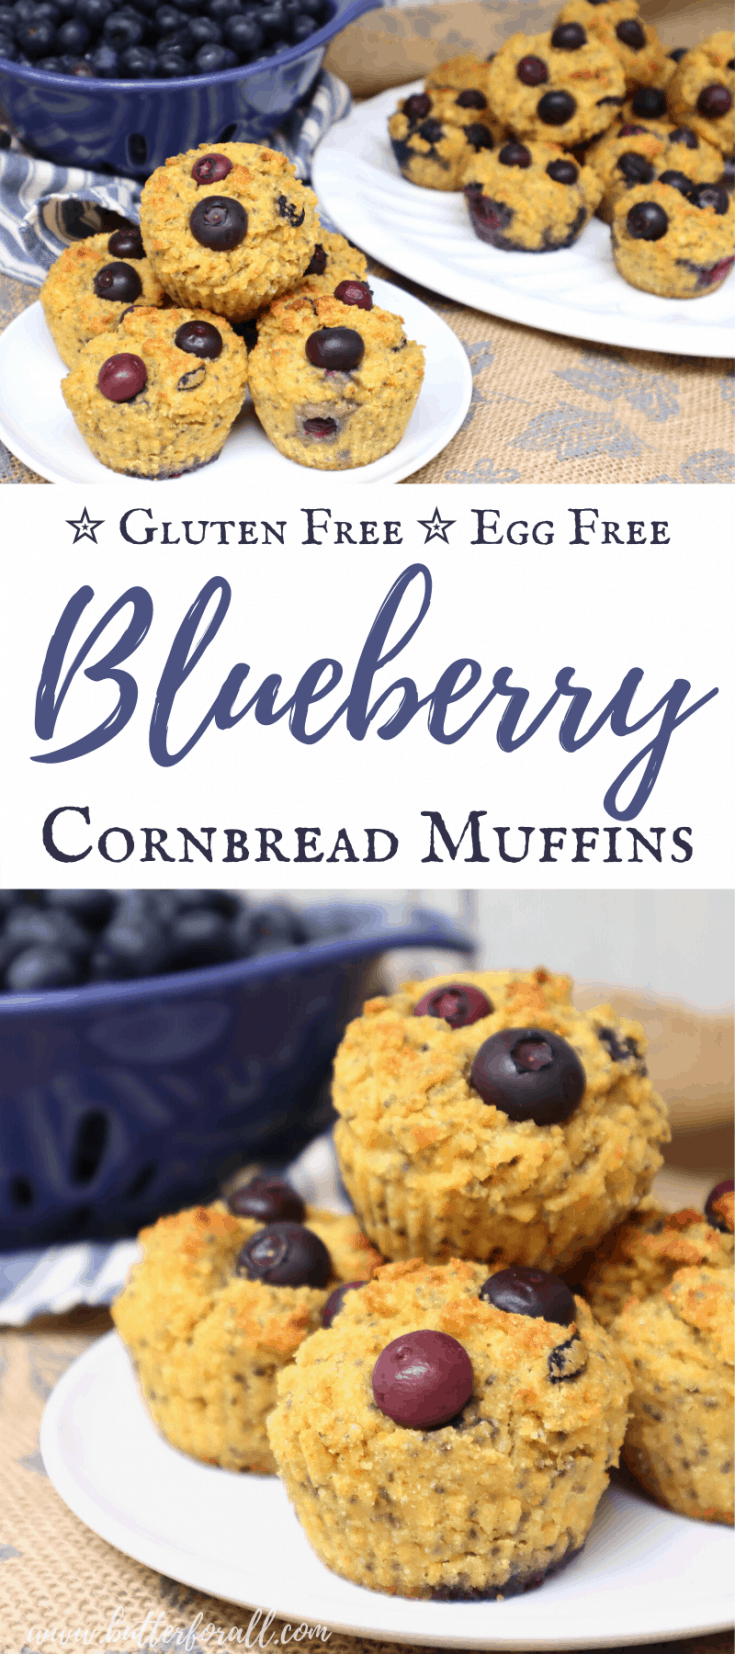 Long Pinterest image showing stacks of blueberry cornbread muffins with text.